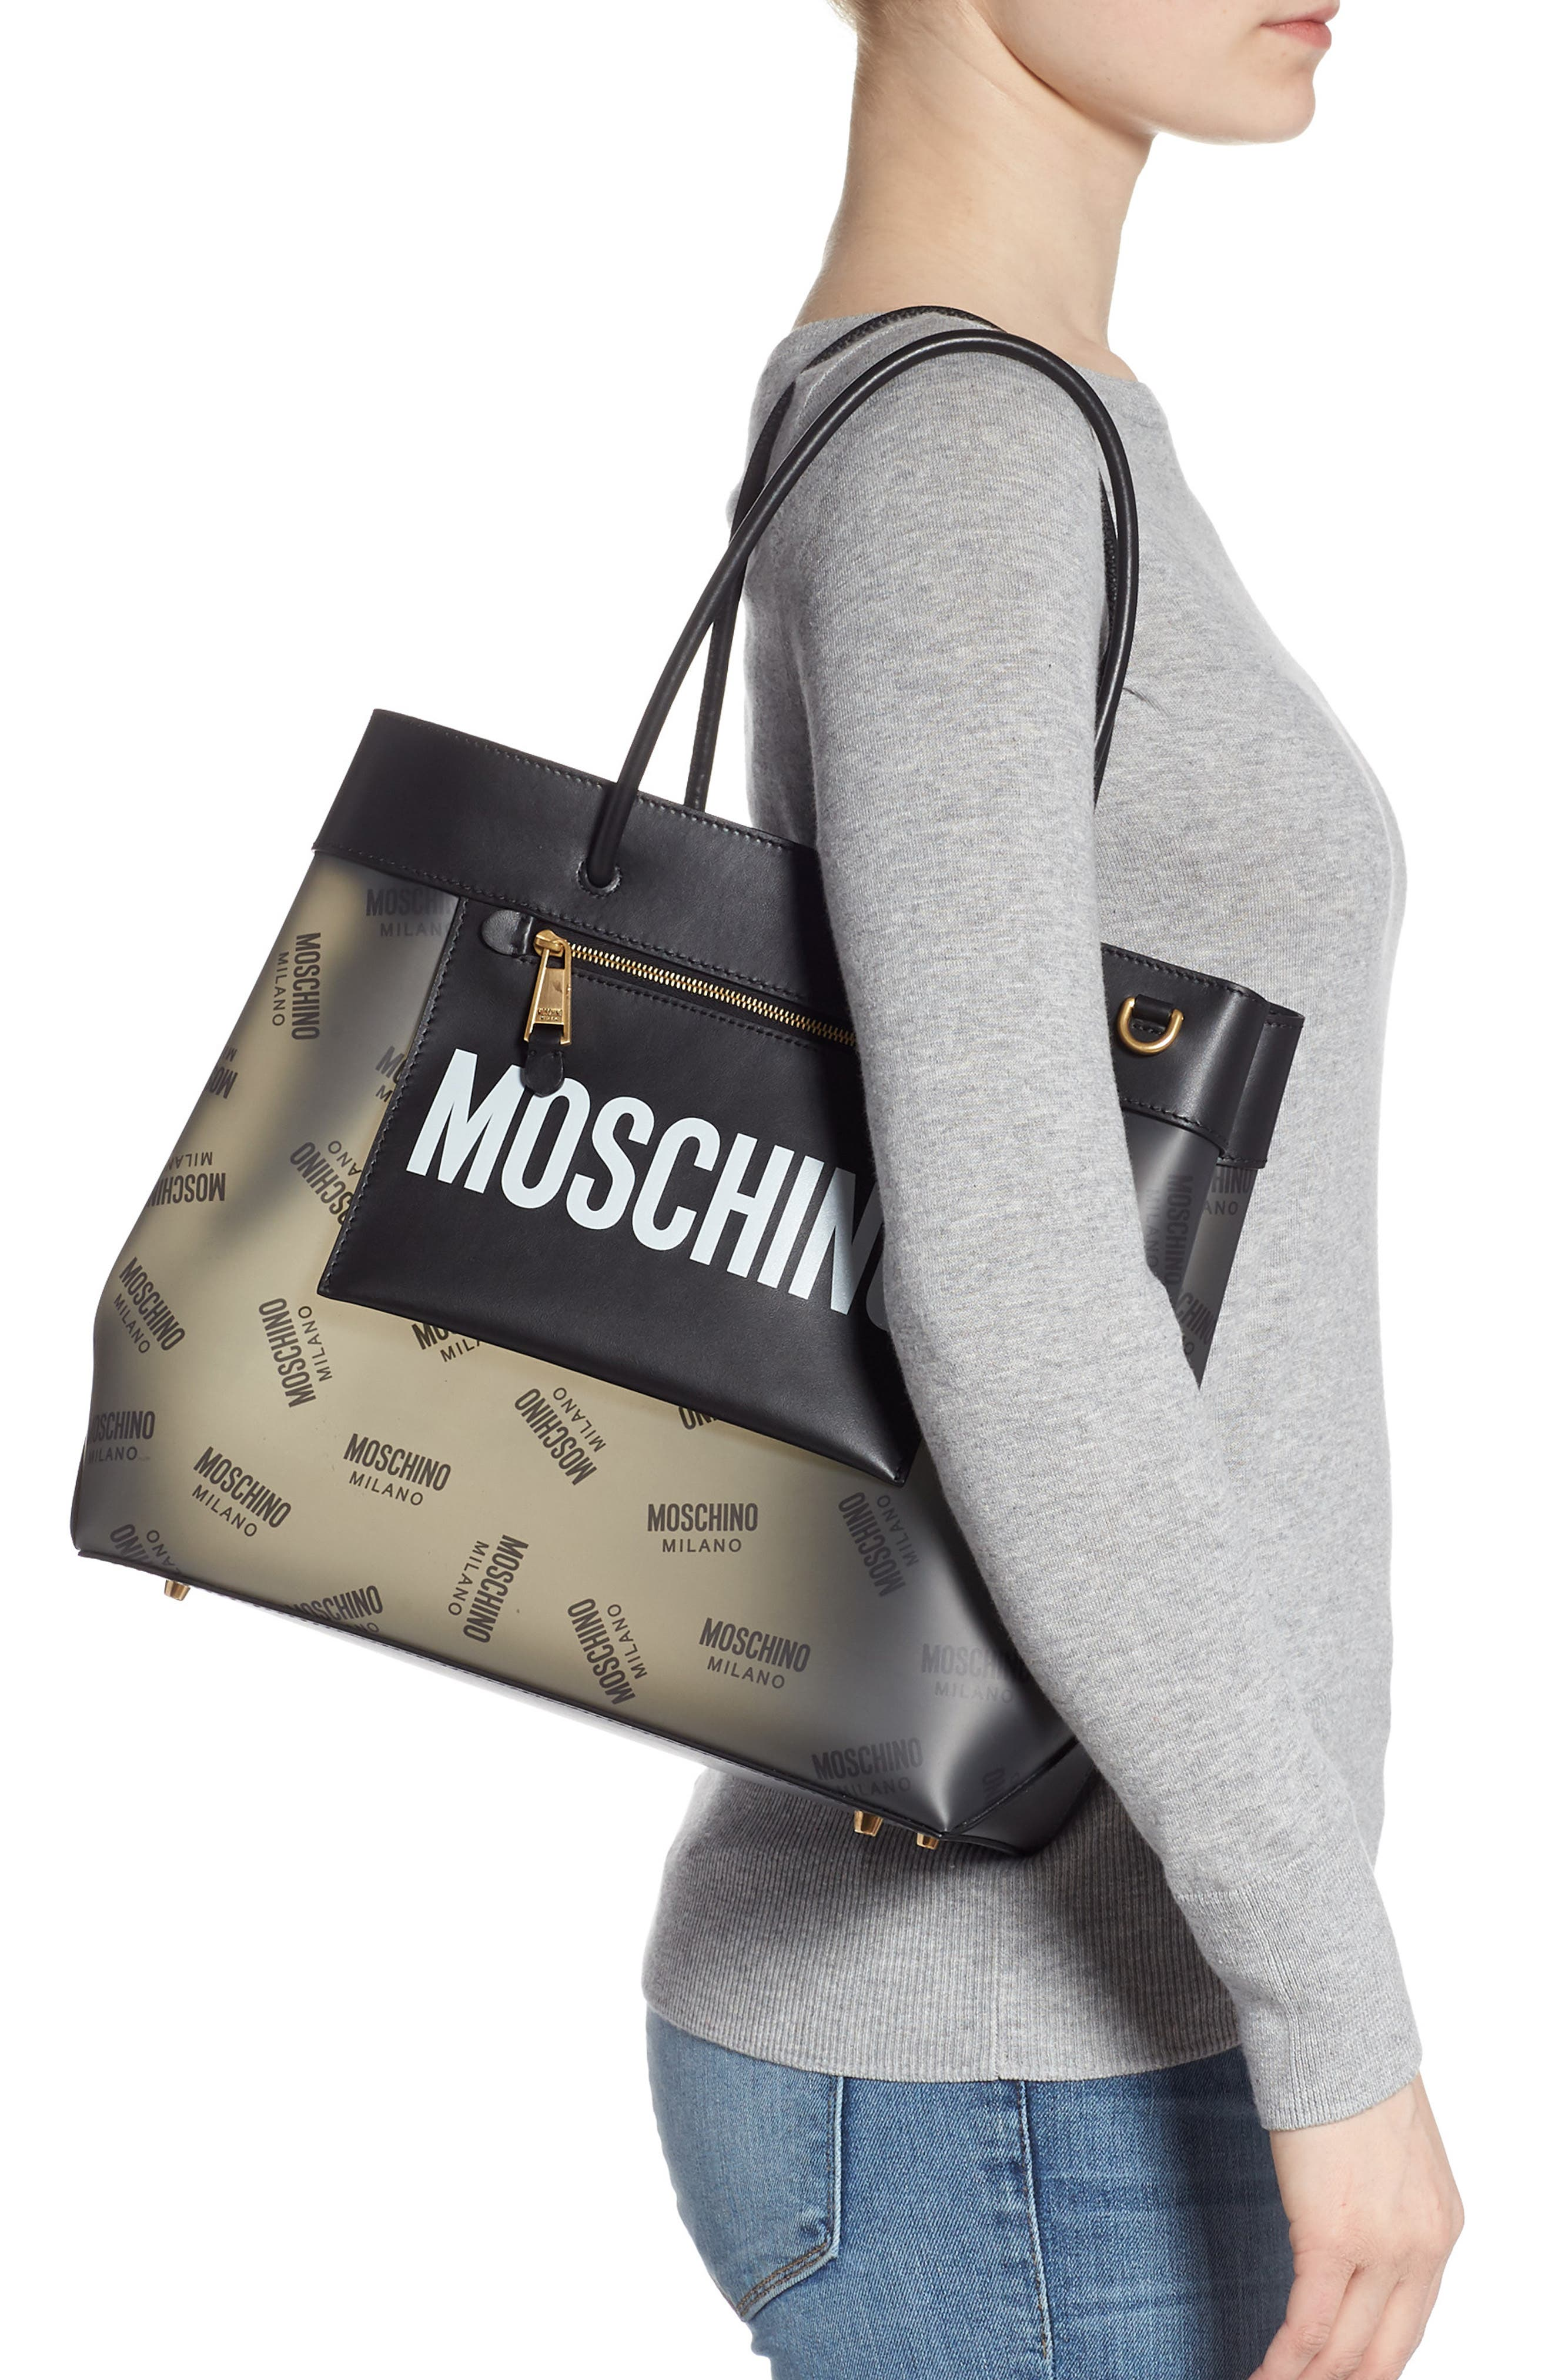 MOSCHINO, Translucent Logo Tote, Alternate thumbnail 2, color, BLACK